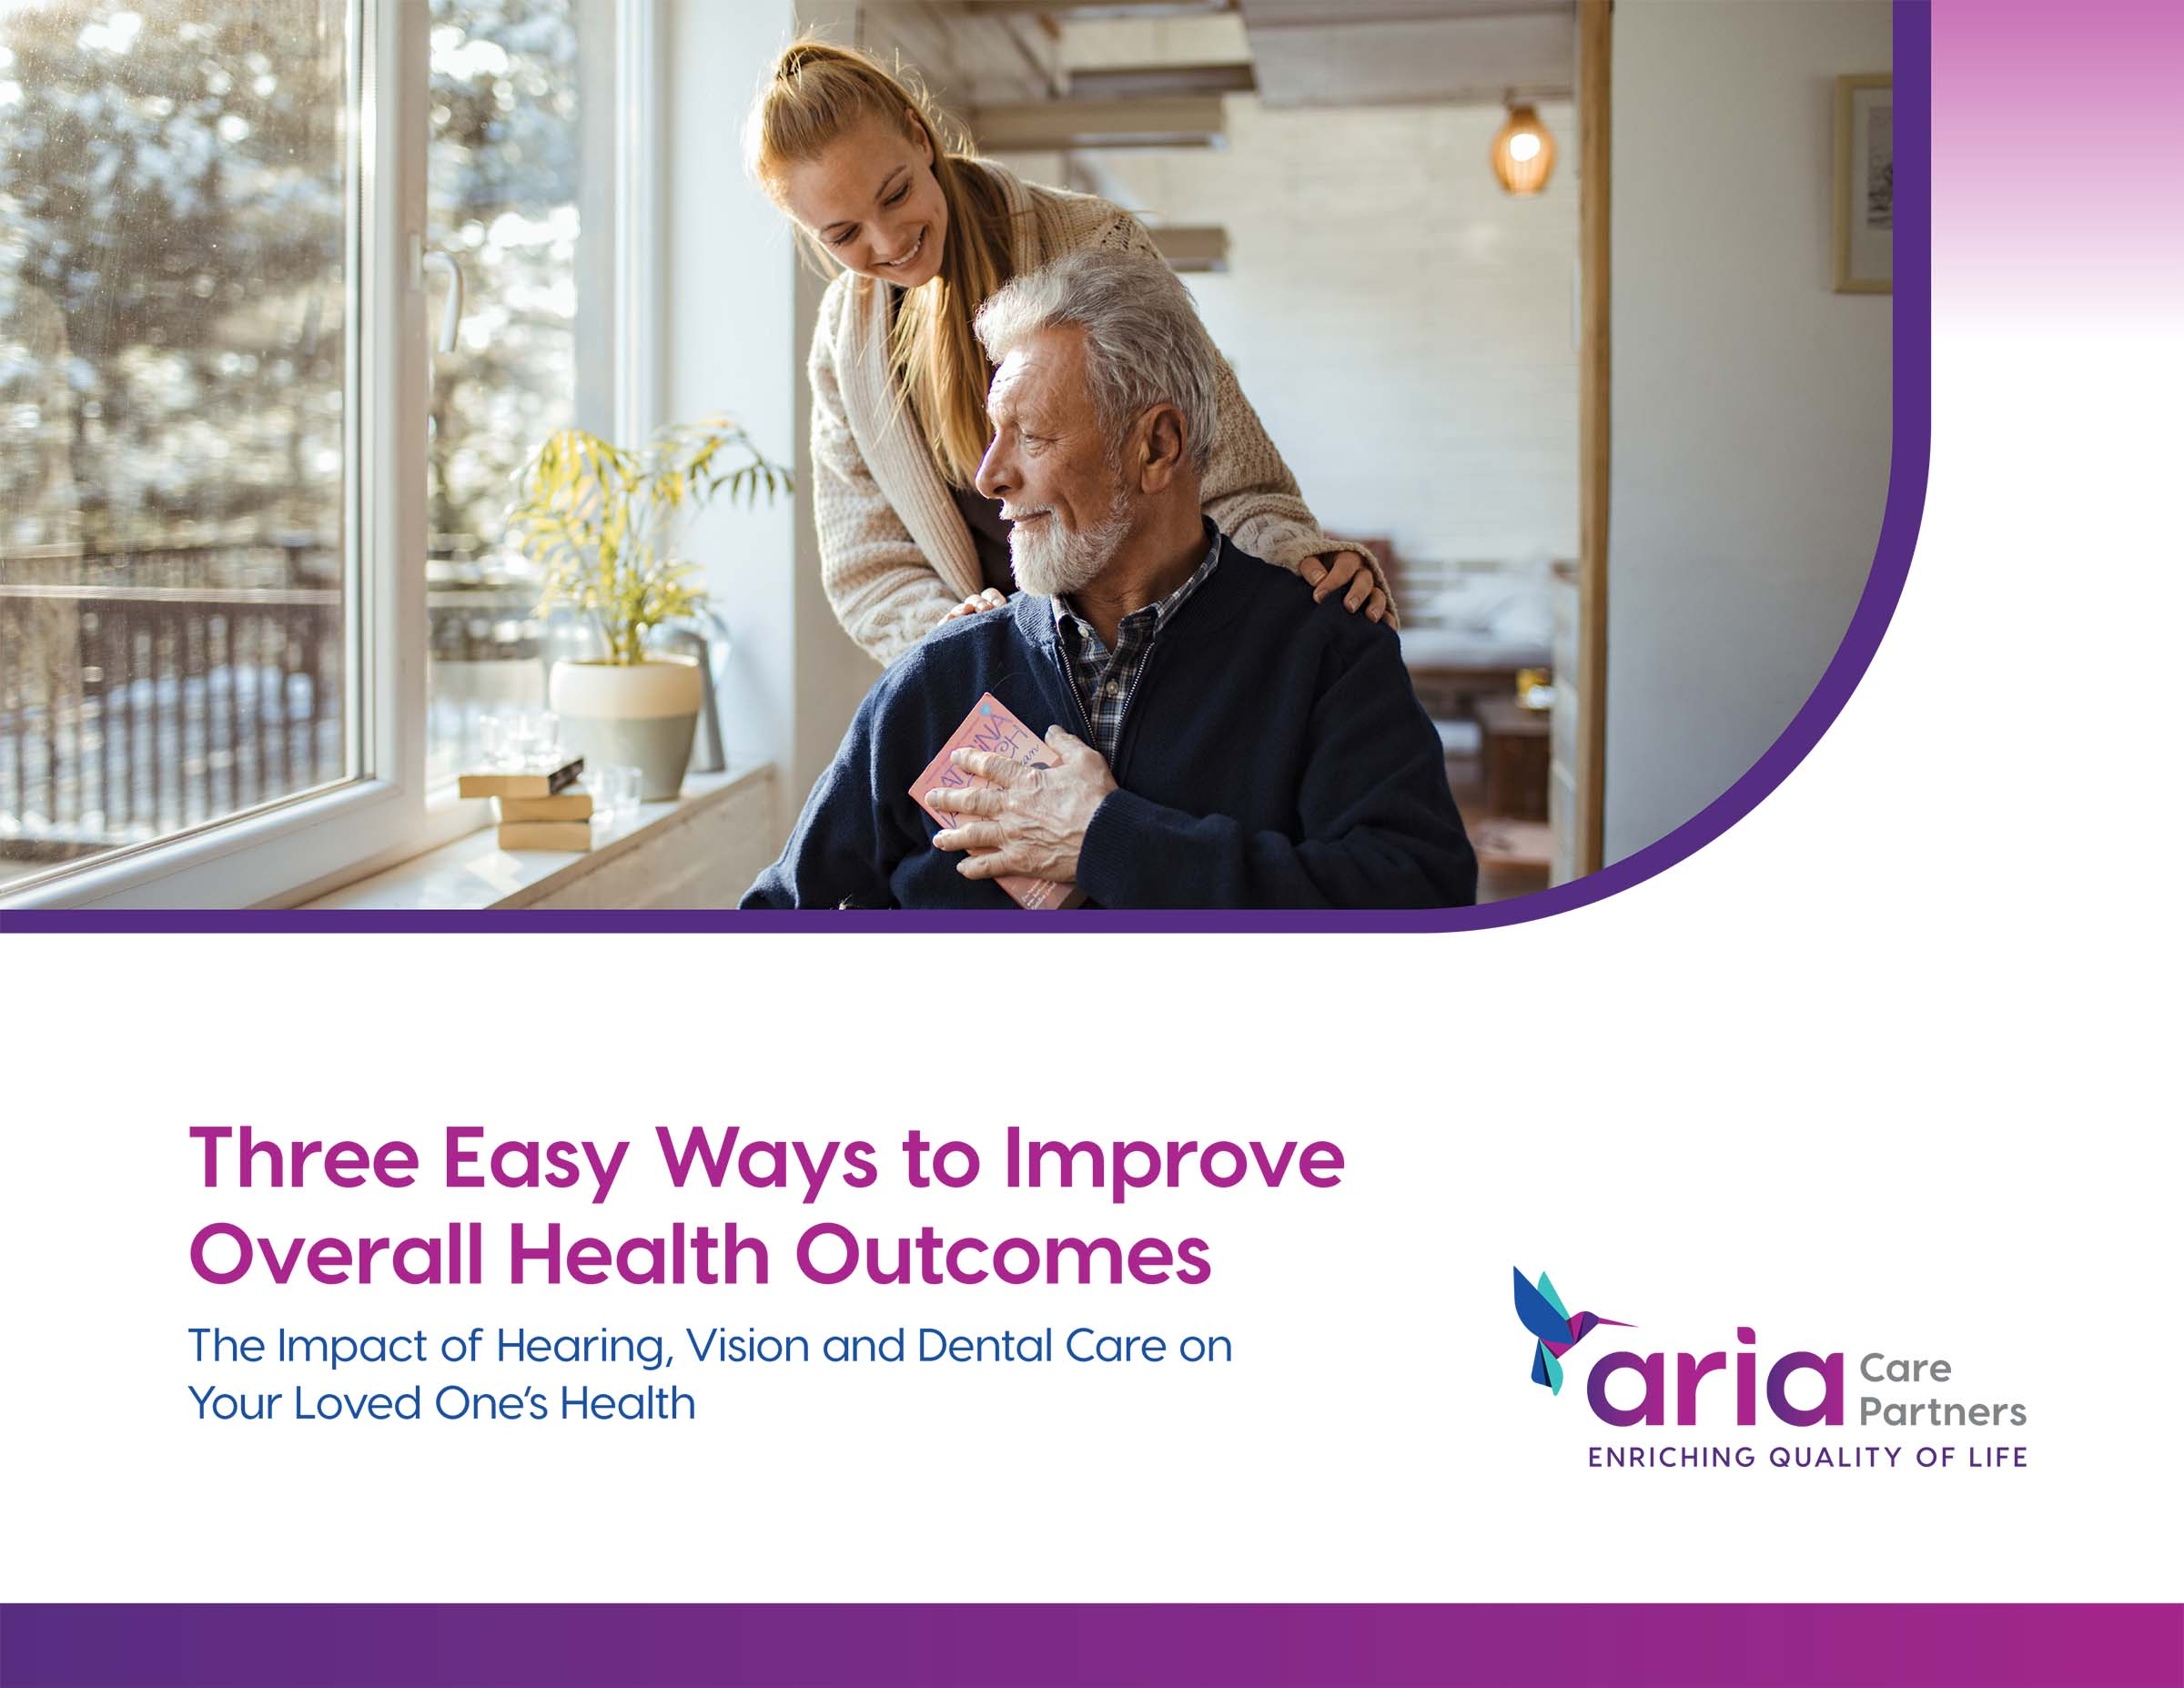 Three Easy Ways to Improve Overall Health Outcomes